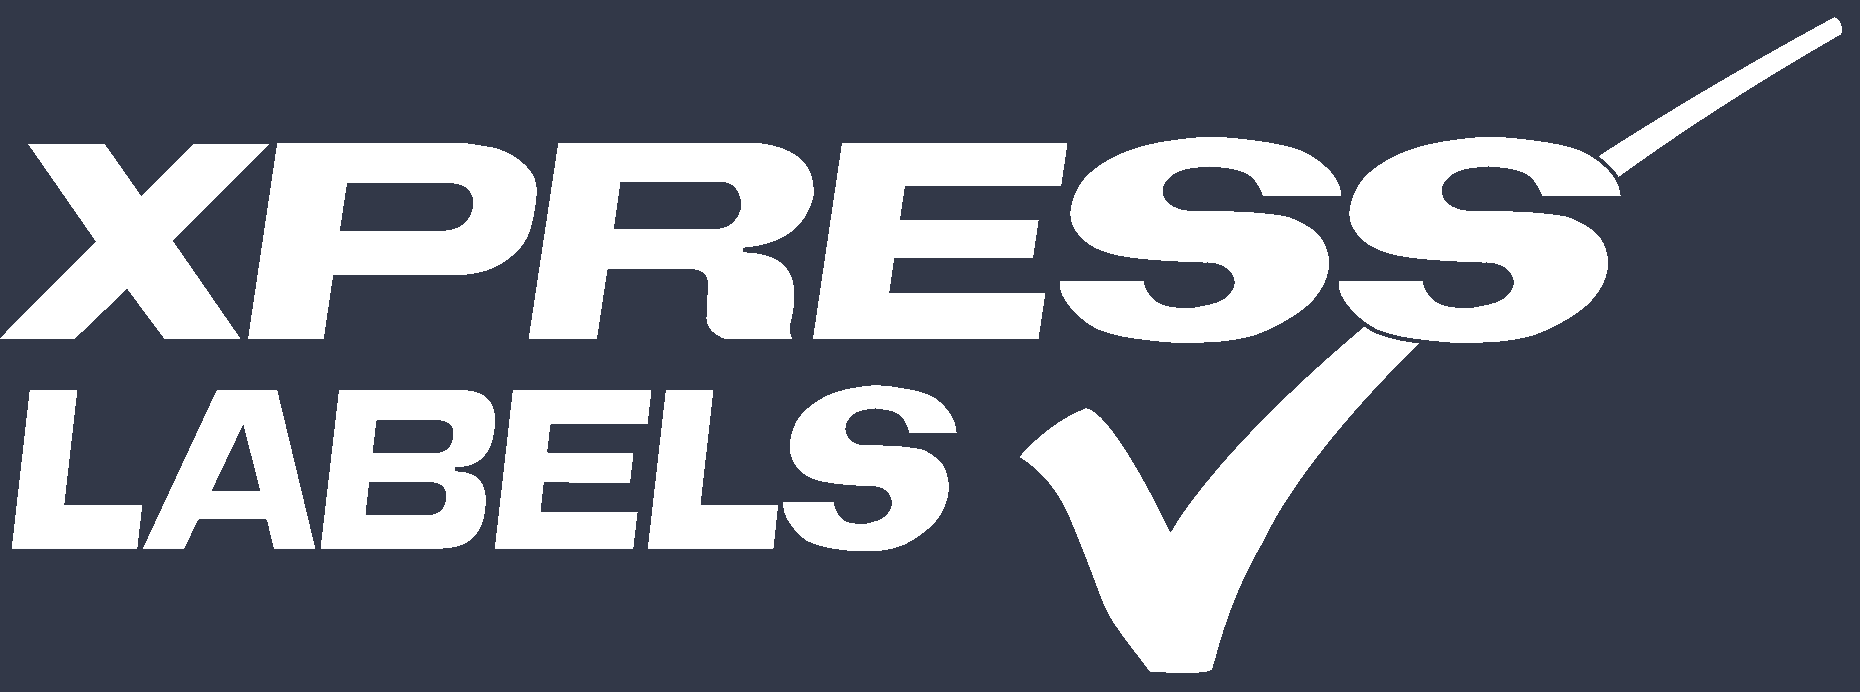 Xpress Labels